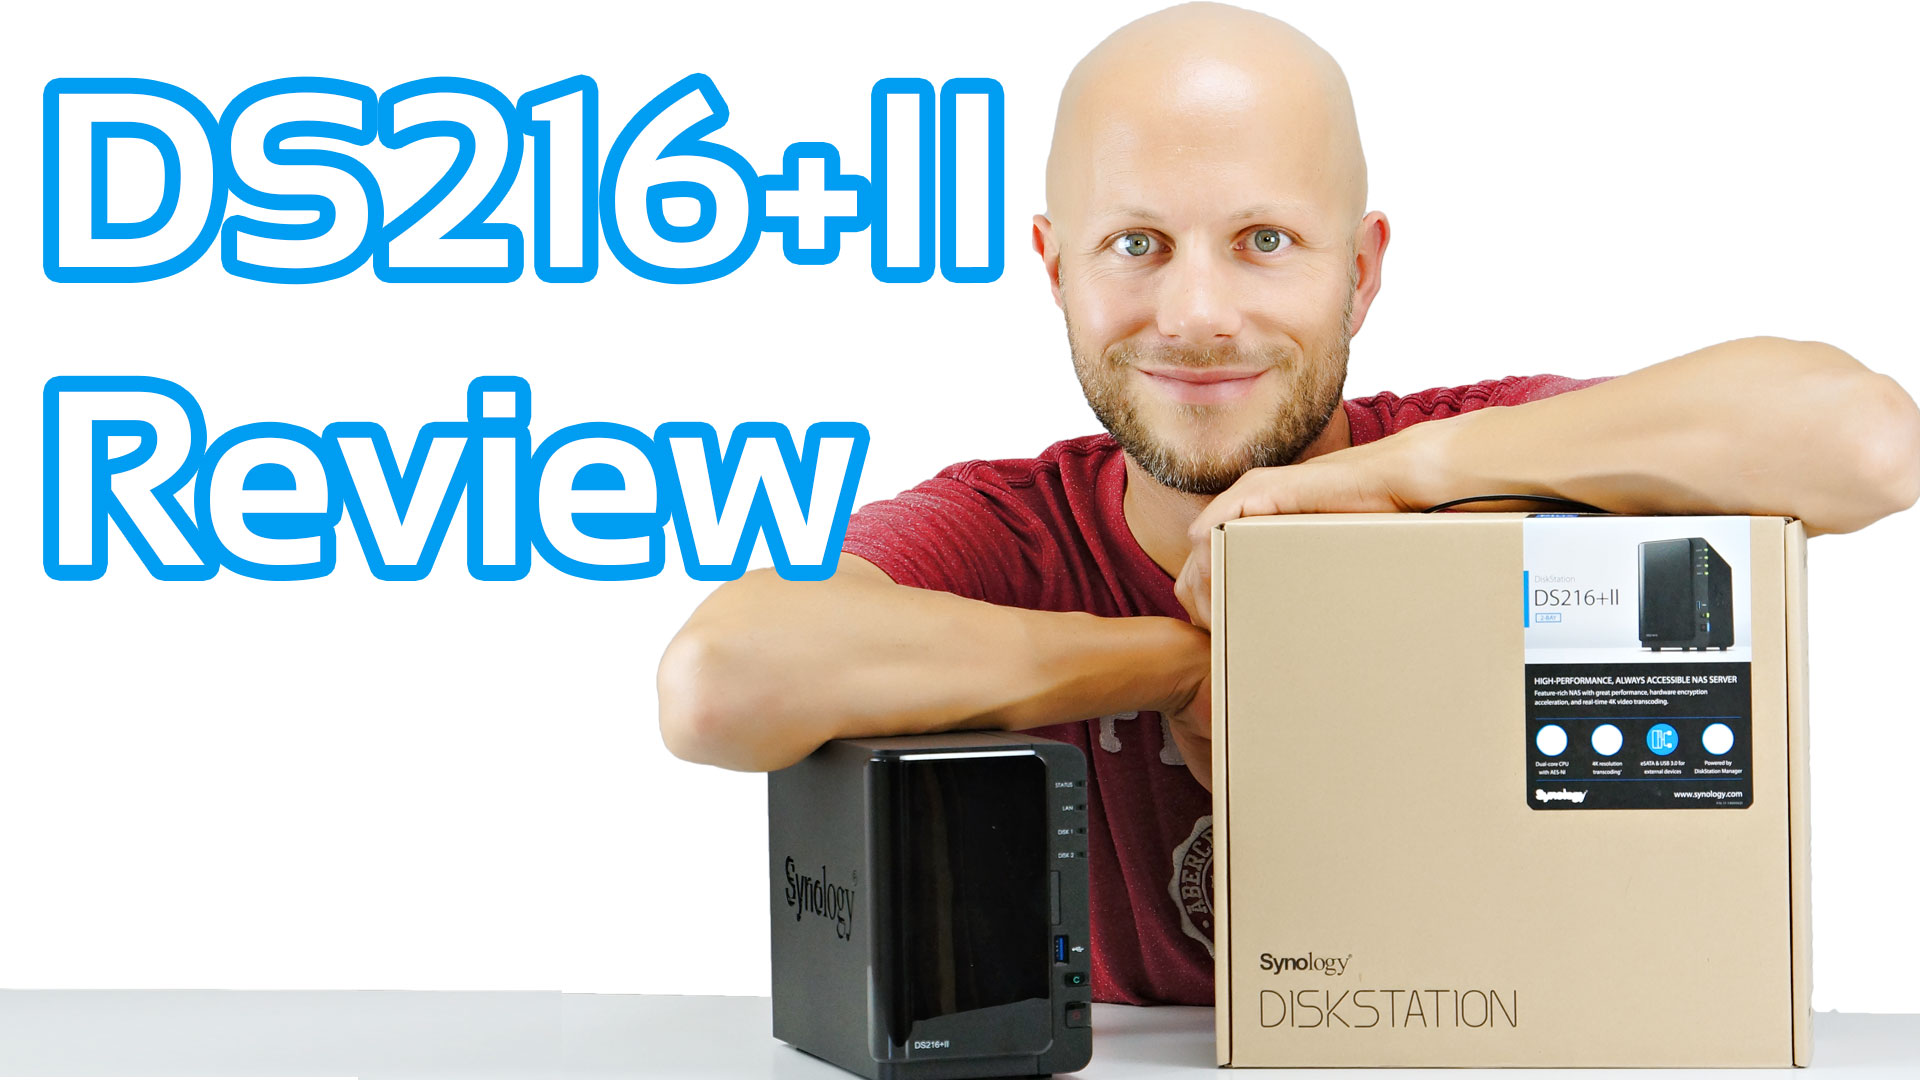 Synology DiskStation DS216+II Review